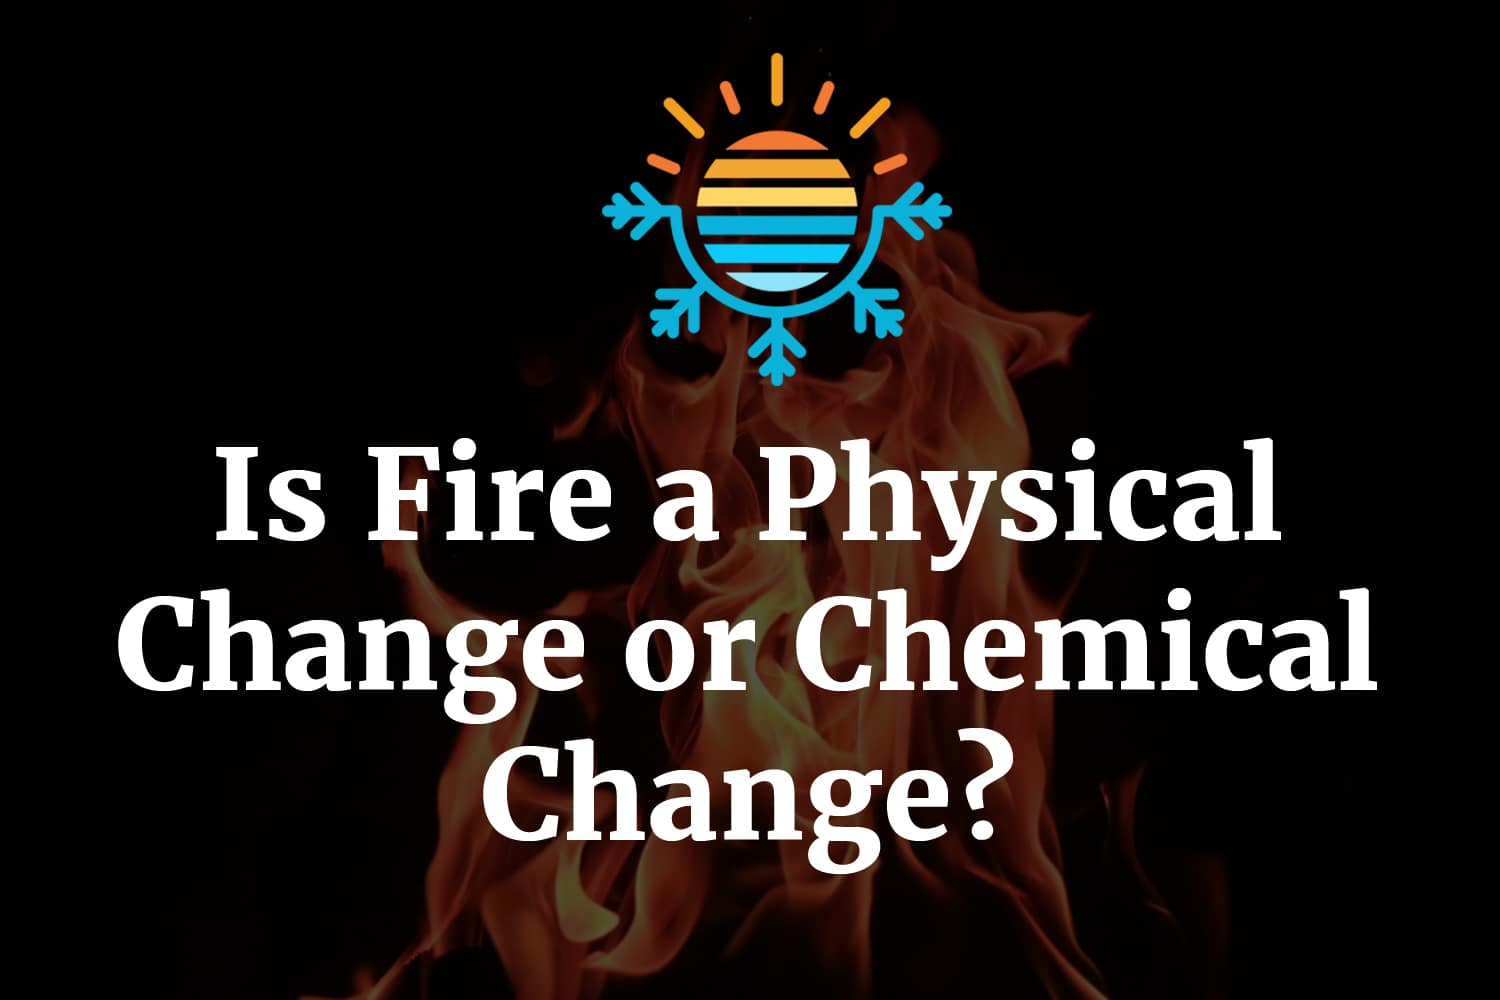 Is Fire a Physical Change or Chemical Change?